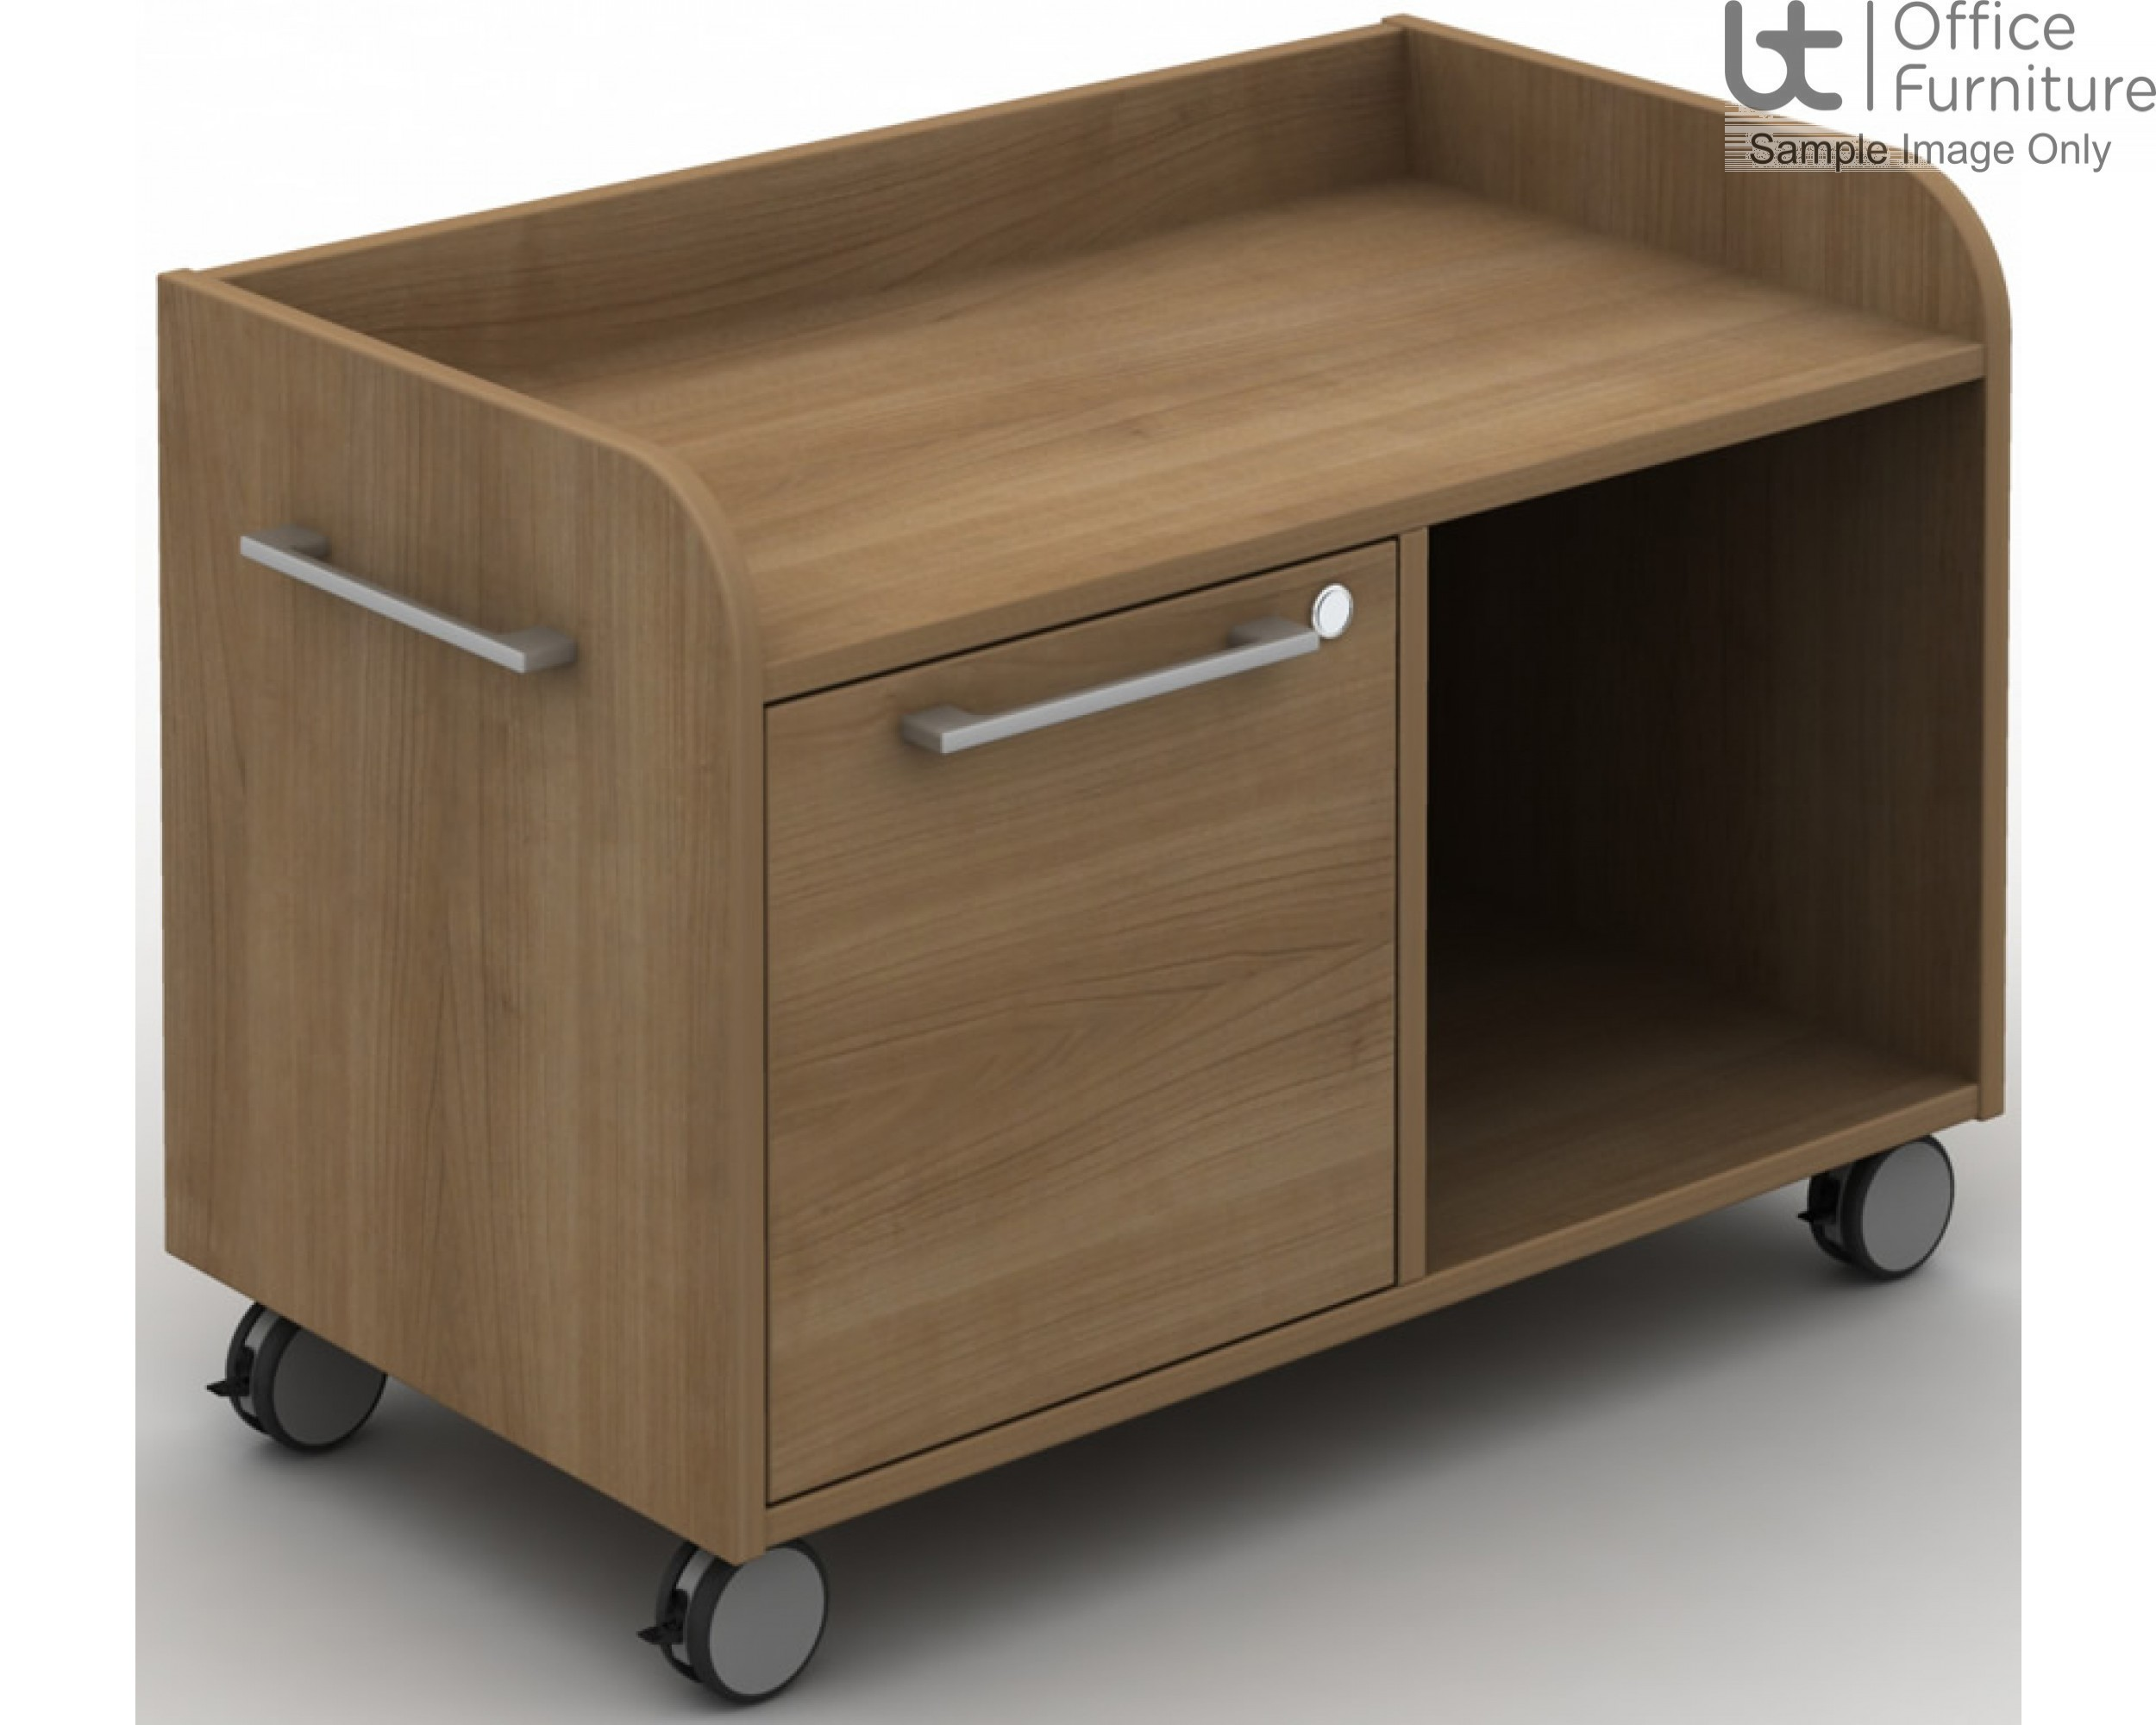 MB Storage Solutions -  Single A4 Filing Drawer Return Caddie - Left Hand Shown